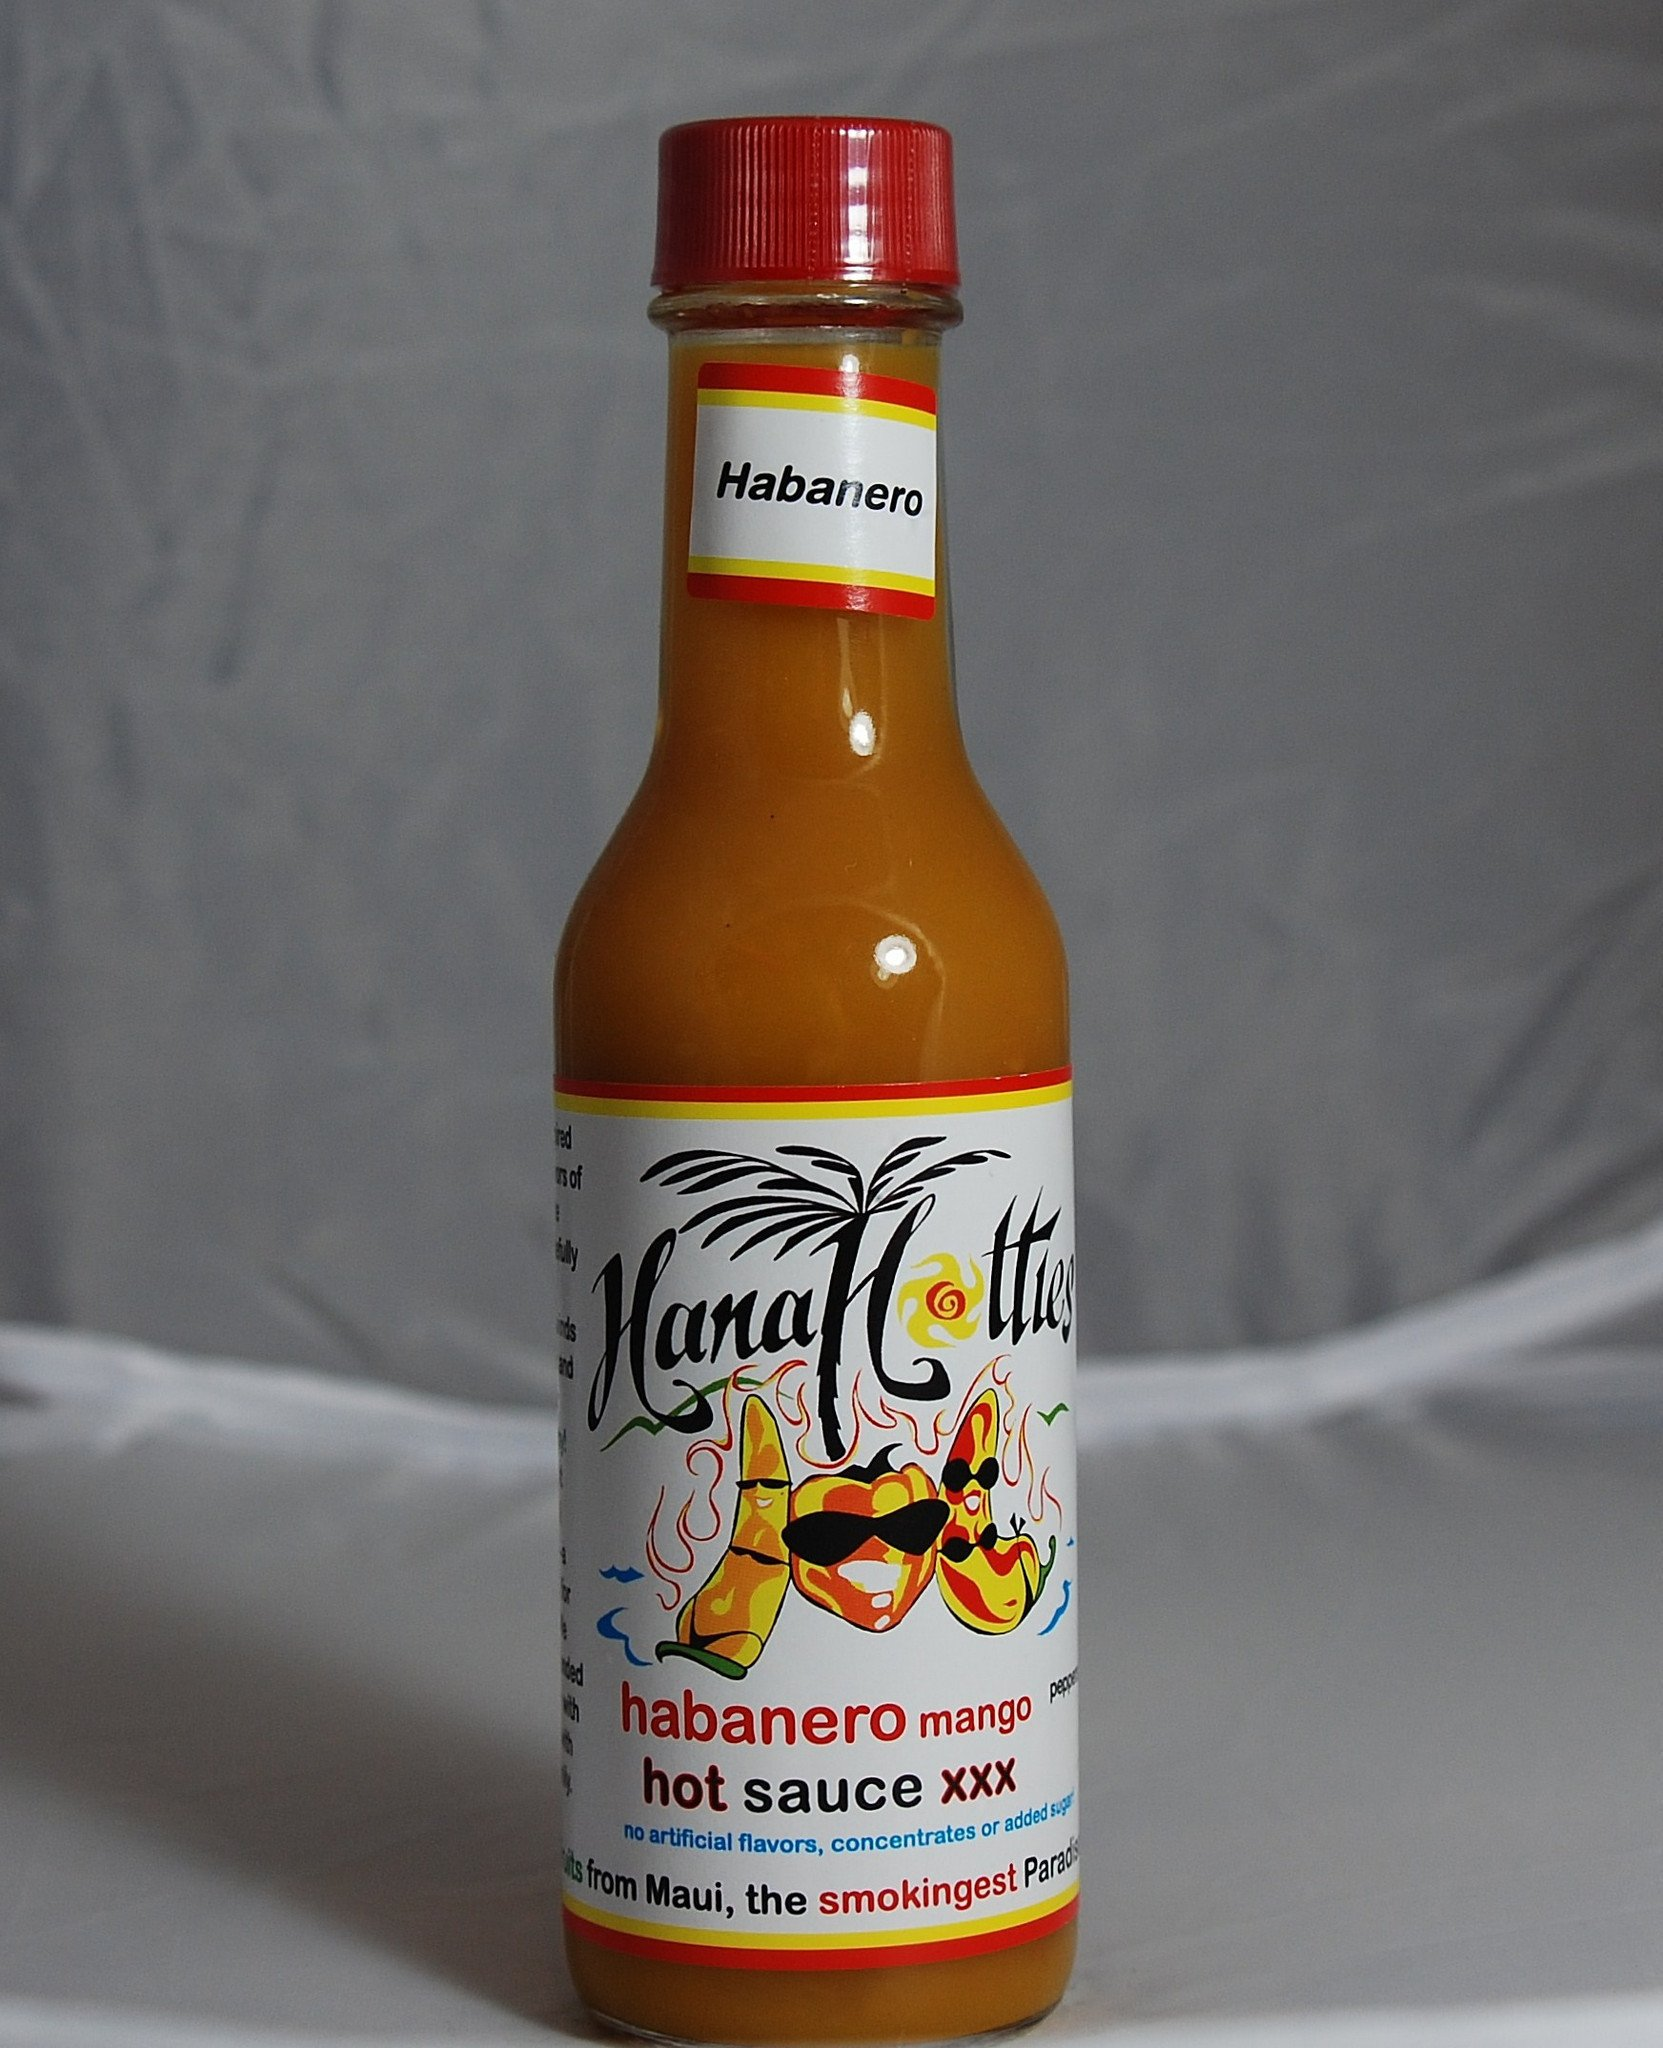 Tutu's Pantry - Hana Hotties Papaya Hot Sauce - 3